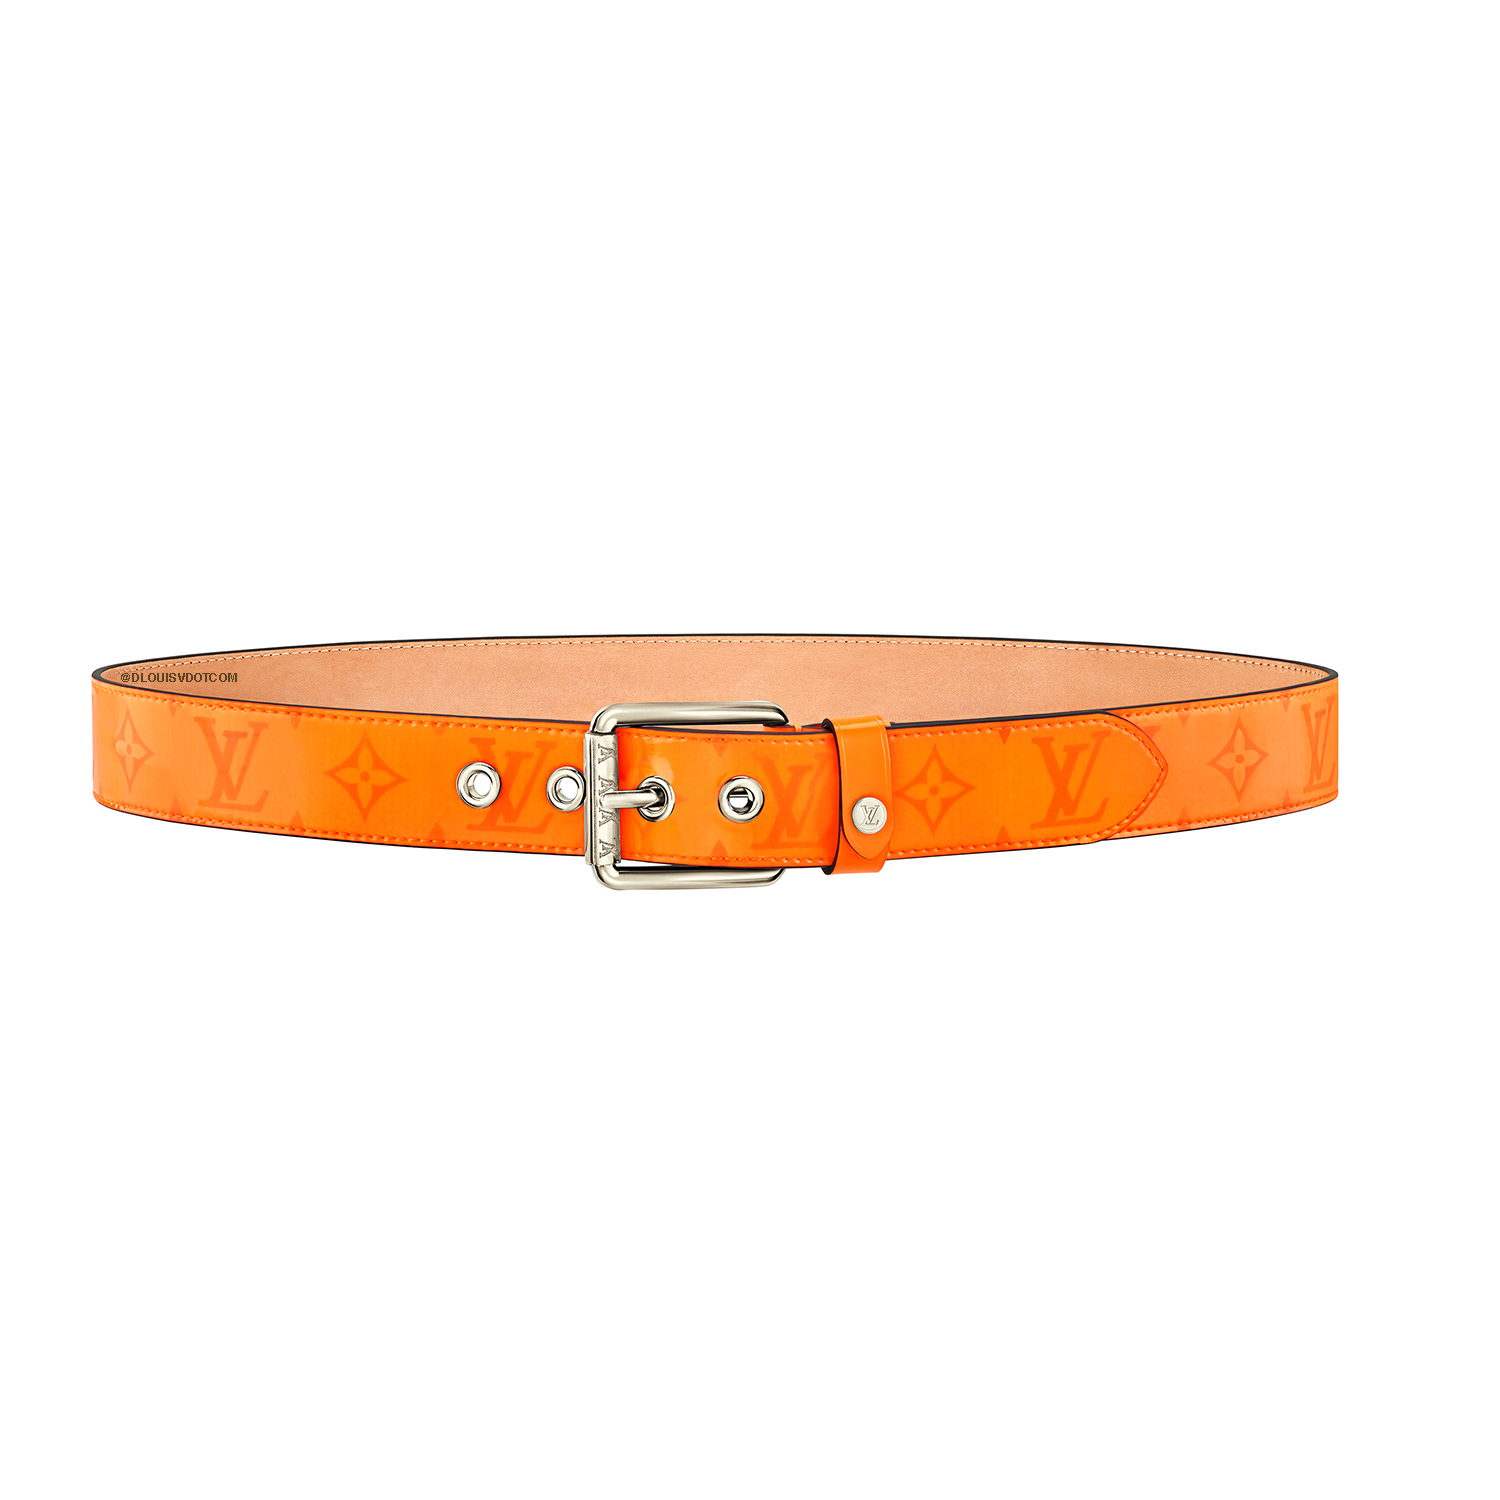 VOYAGER 35MM - CANCELLEDMP045MONOGRAM FLUO ORANGE